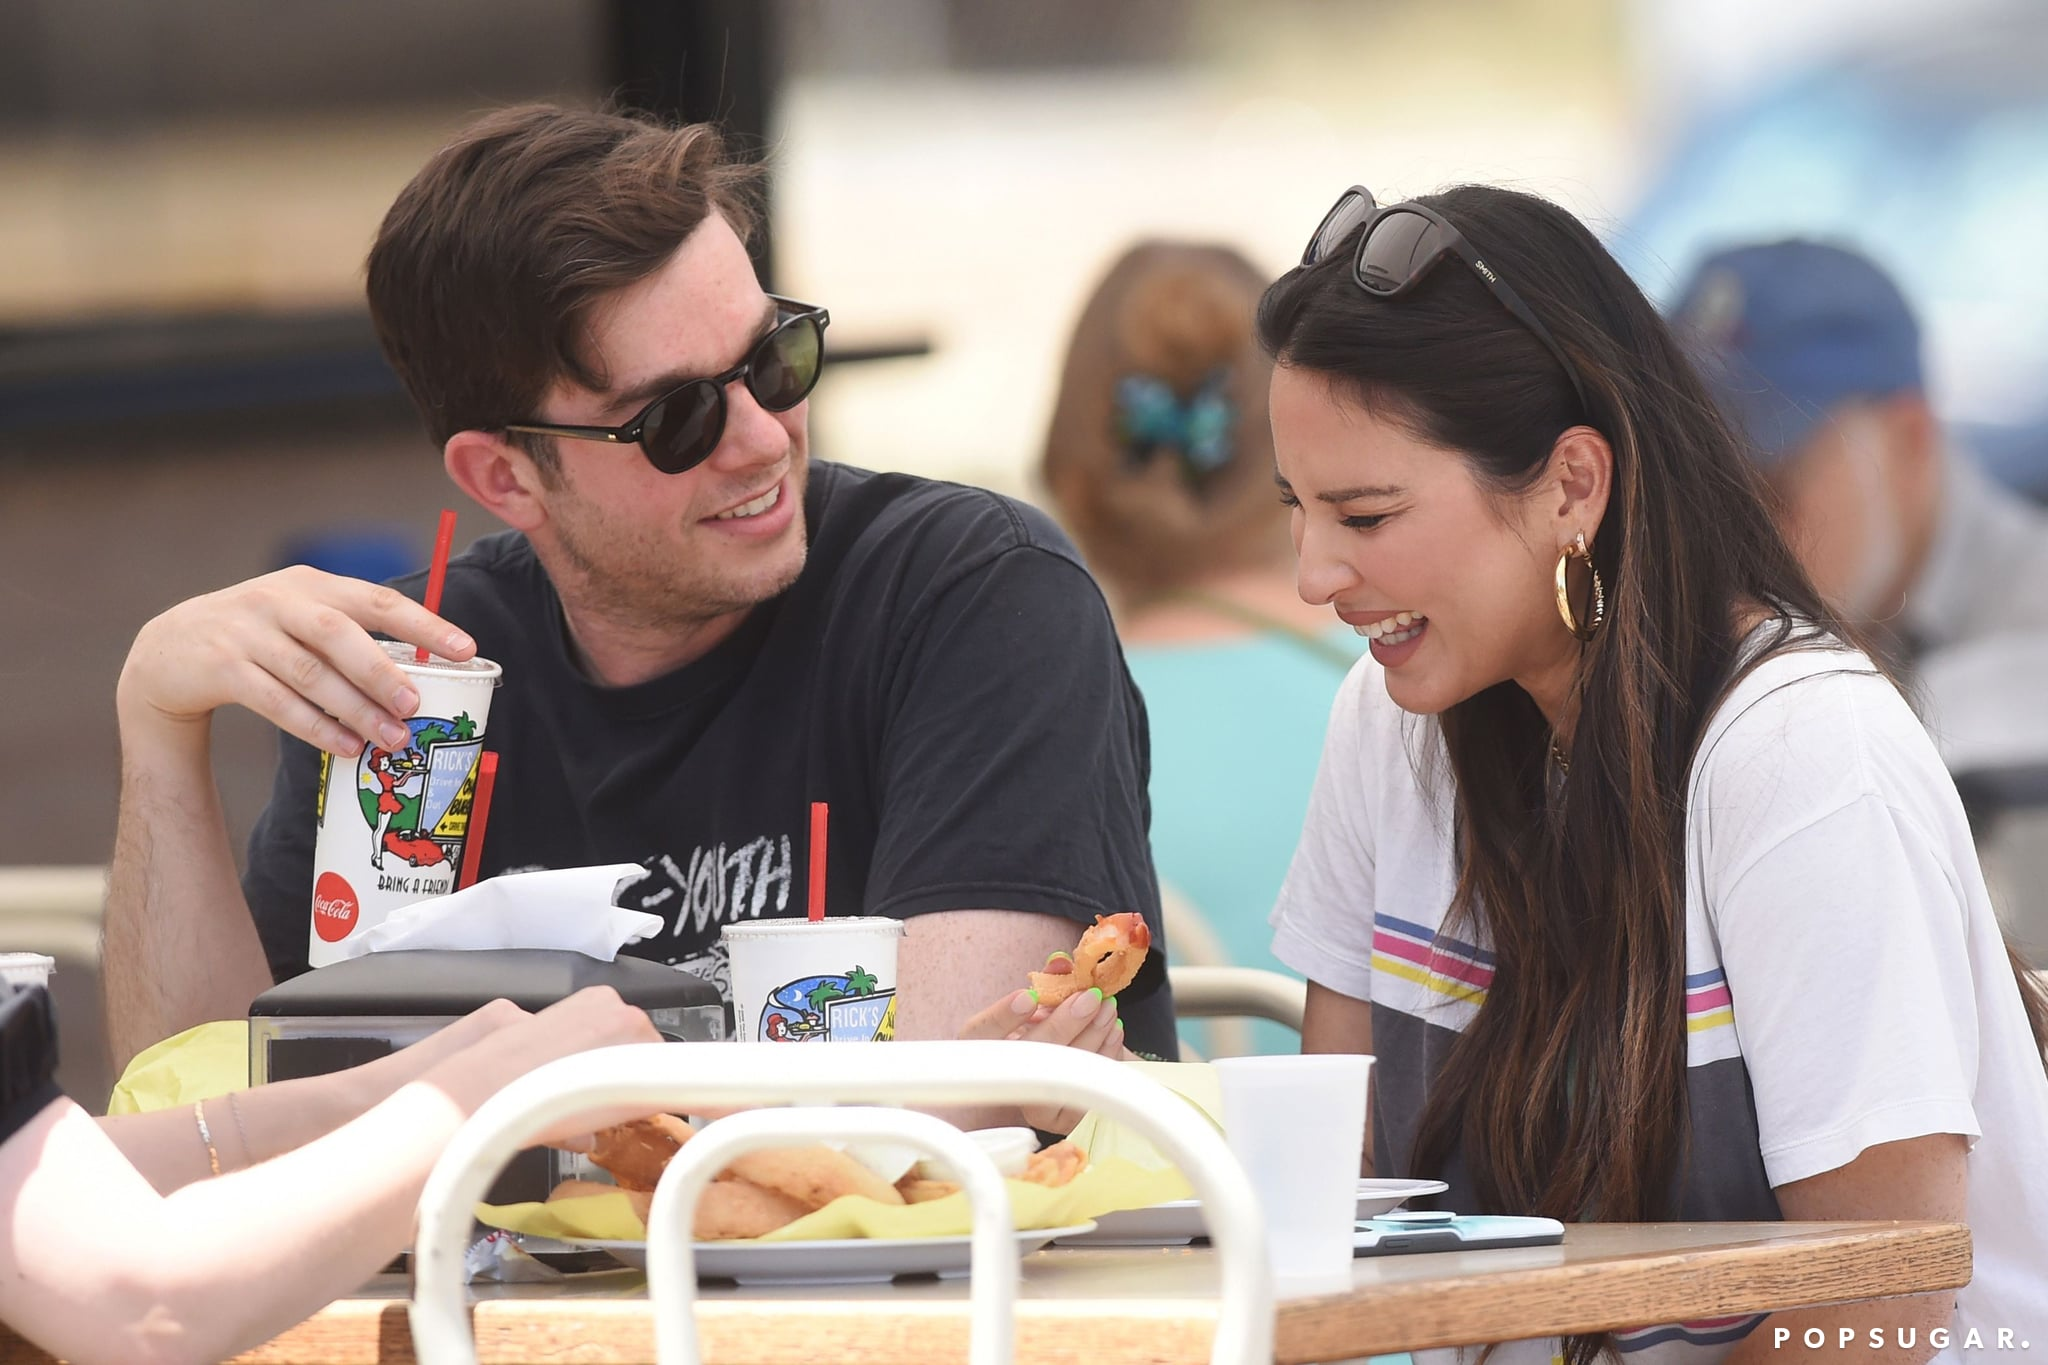 Exclusive All RoundMandatory Credit: Photo by Michael Simon/Shutterstock (12190275ag)Exclusive - First photos of John Mulaney and Olivia Munn after confirmation of their relationship. The two were all smiles and laughing out at lunch at Rick's Drive In & Out.Exclusive - John Mulaney and Olivia Munn on a date, Los Angeles, California, USA - 26 Jun 2021